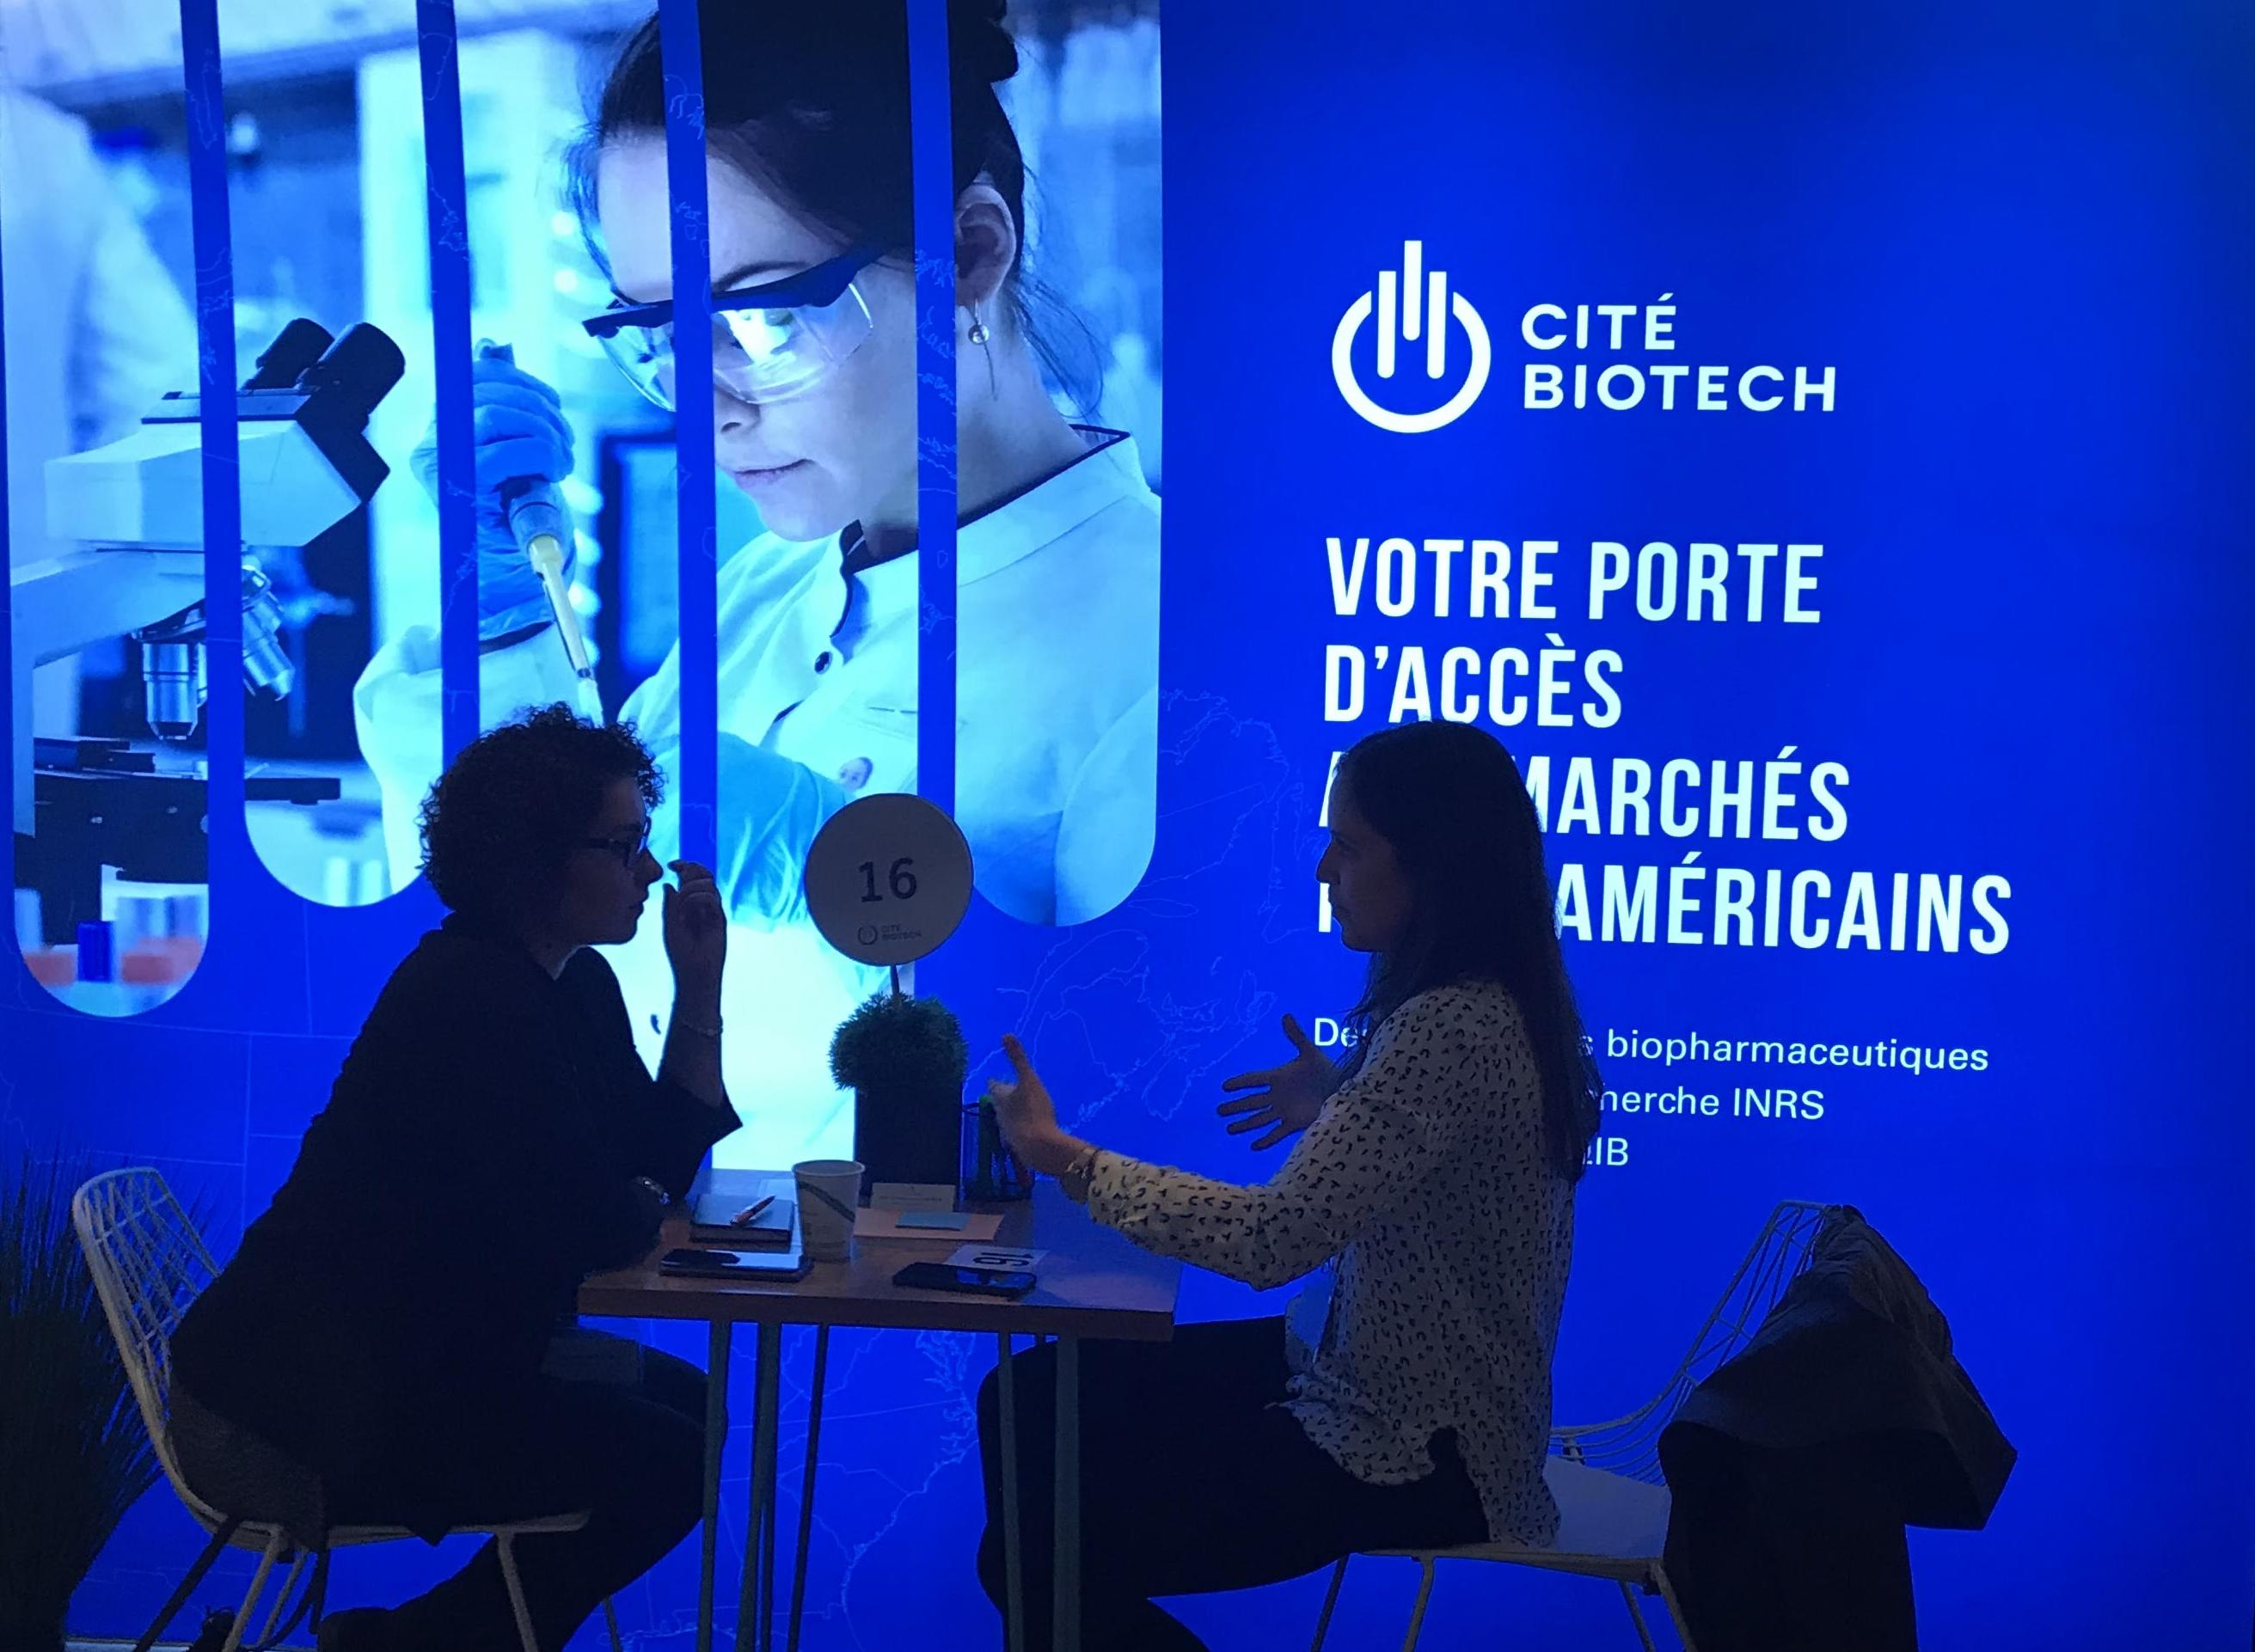 The Biotech City was at Effervescence